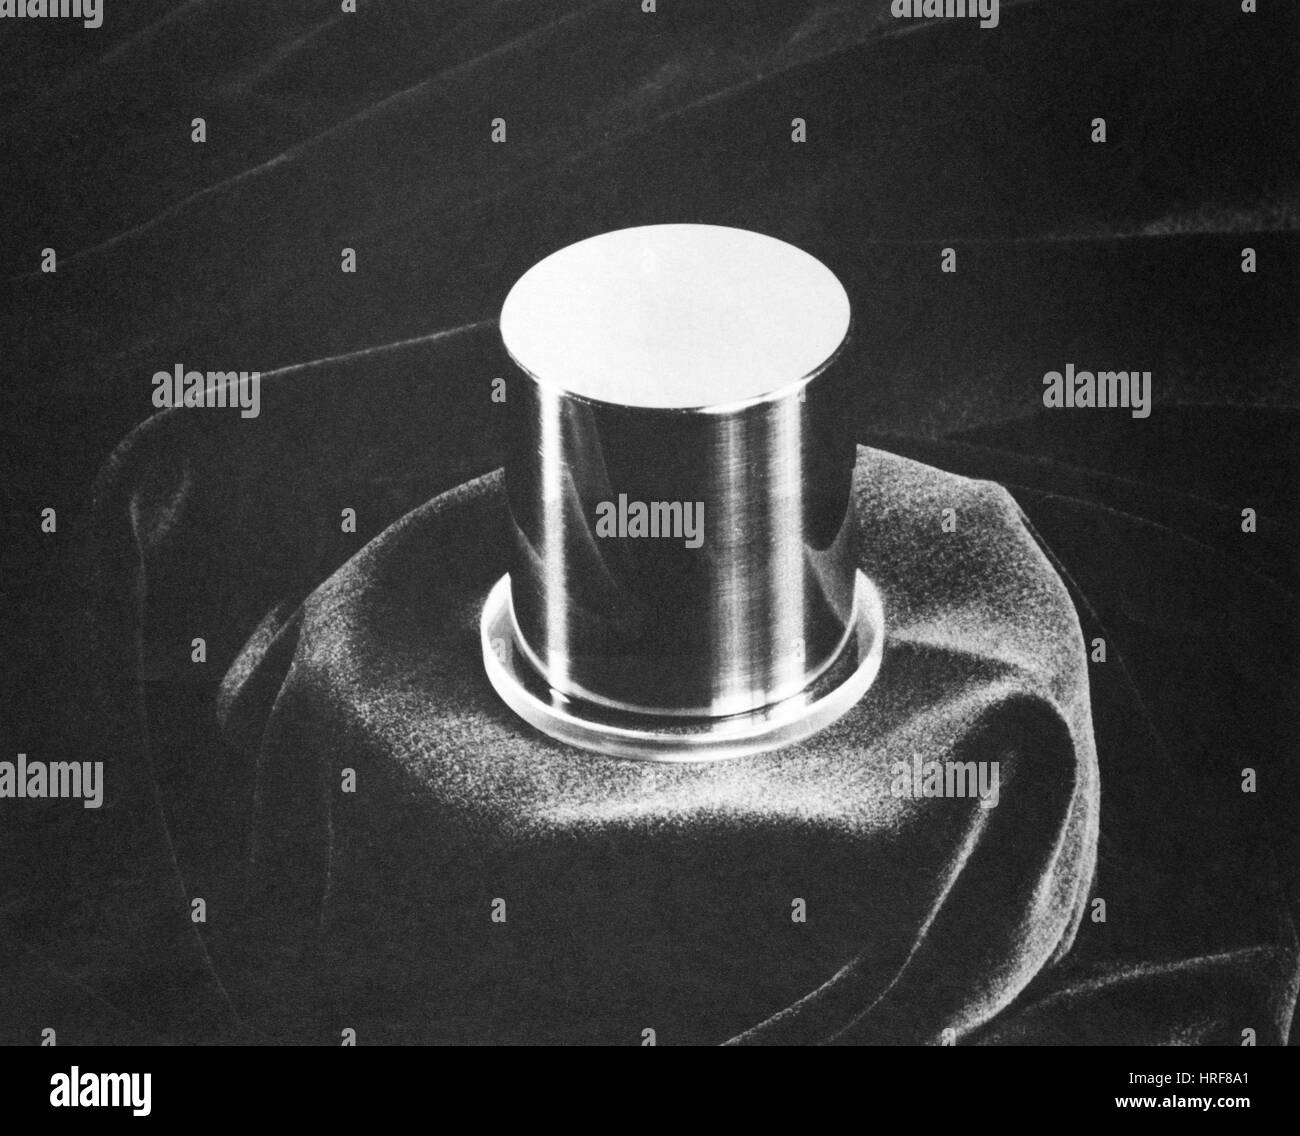 National Standard of Mass, Kilogram No. 20 Stock Photo